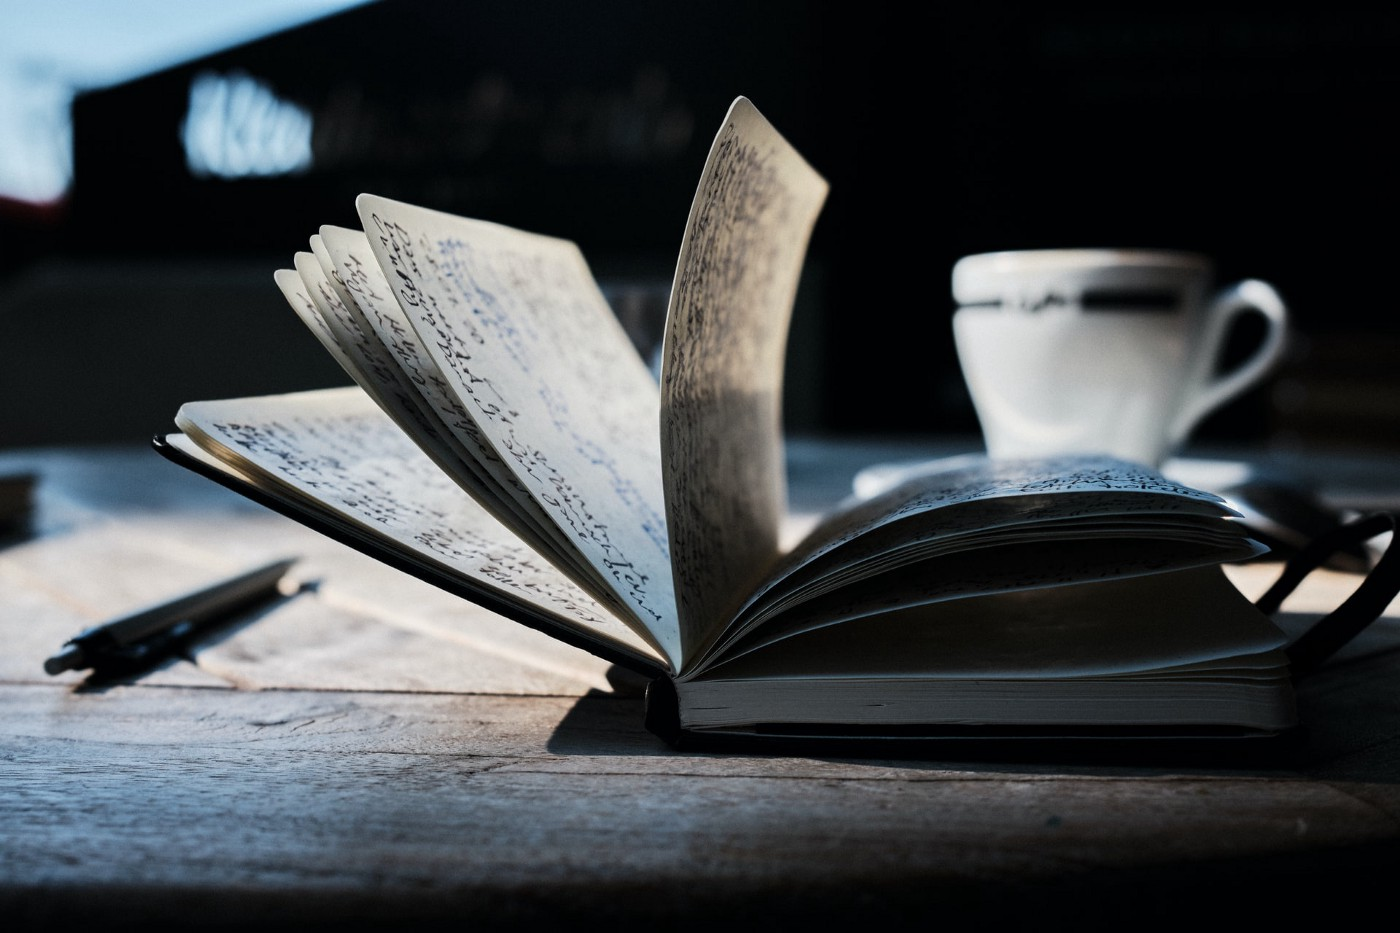 A book and a mug. Photo from Unsplash by Yannick Pulver.